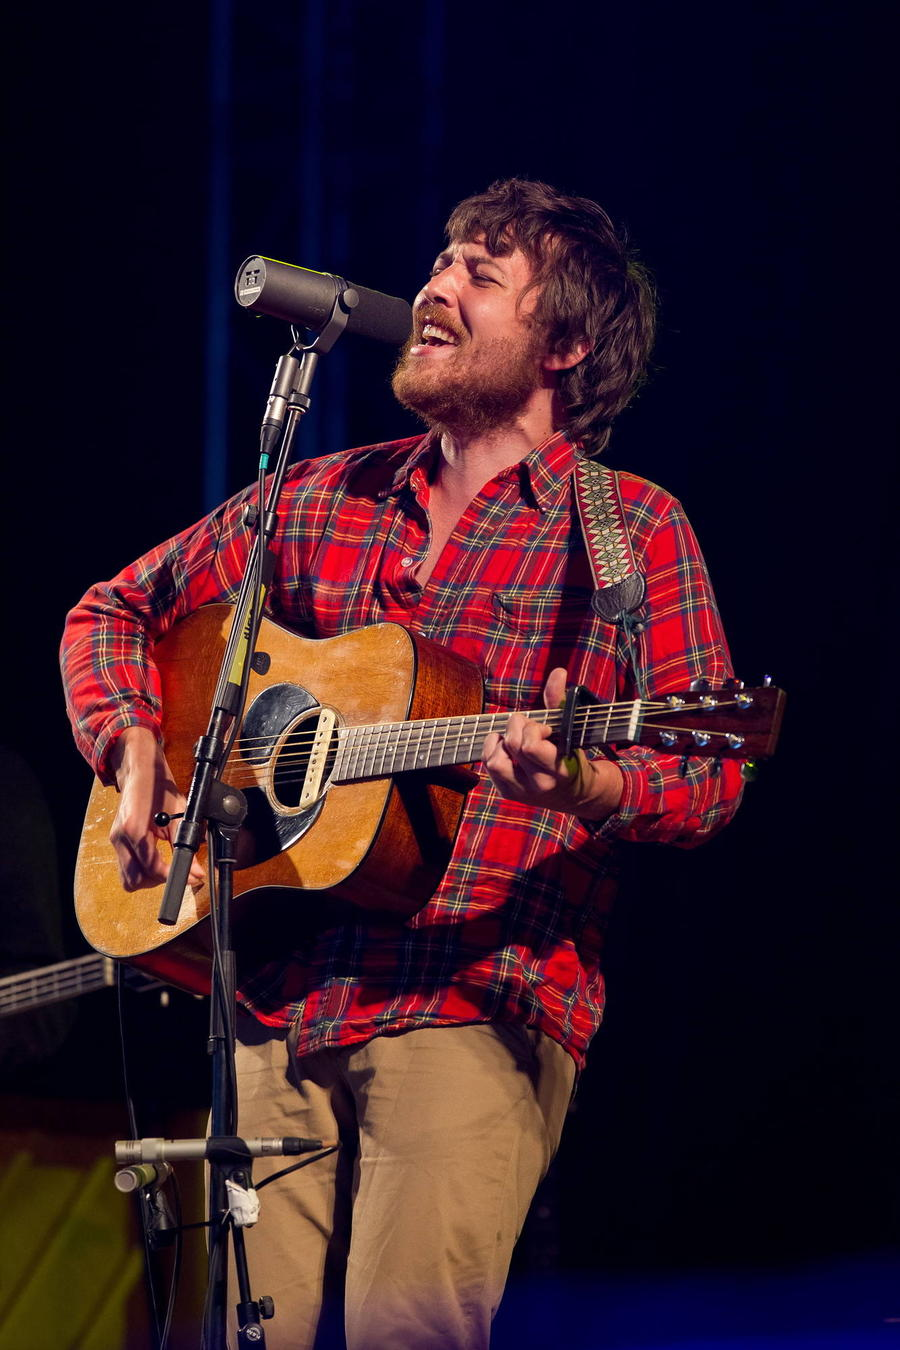 Fleet Foxes Reform After Five-year Hiatus